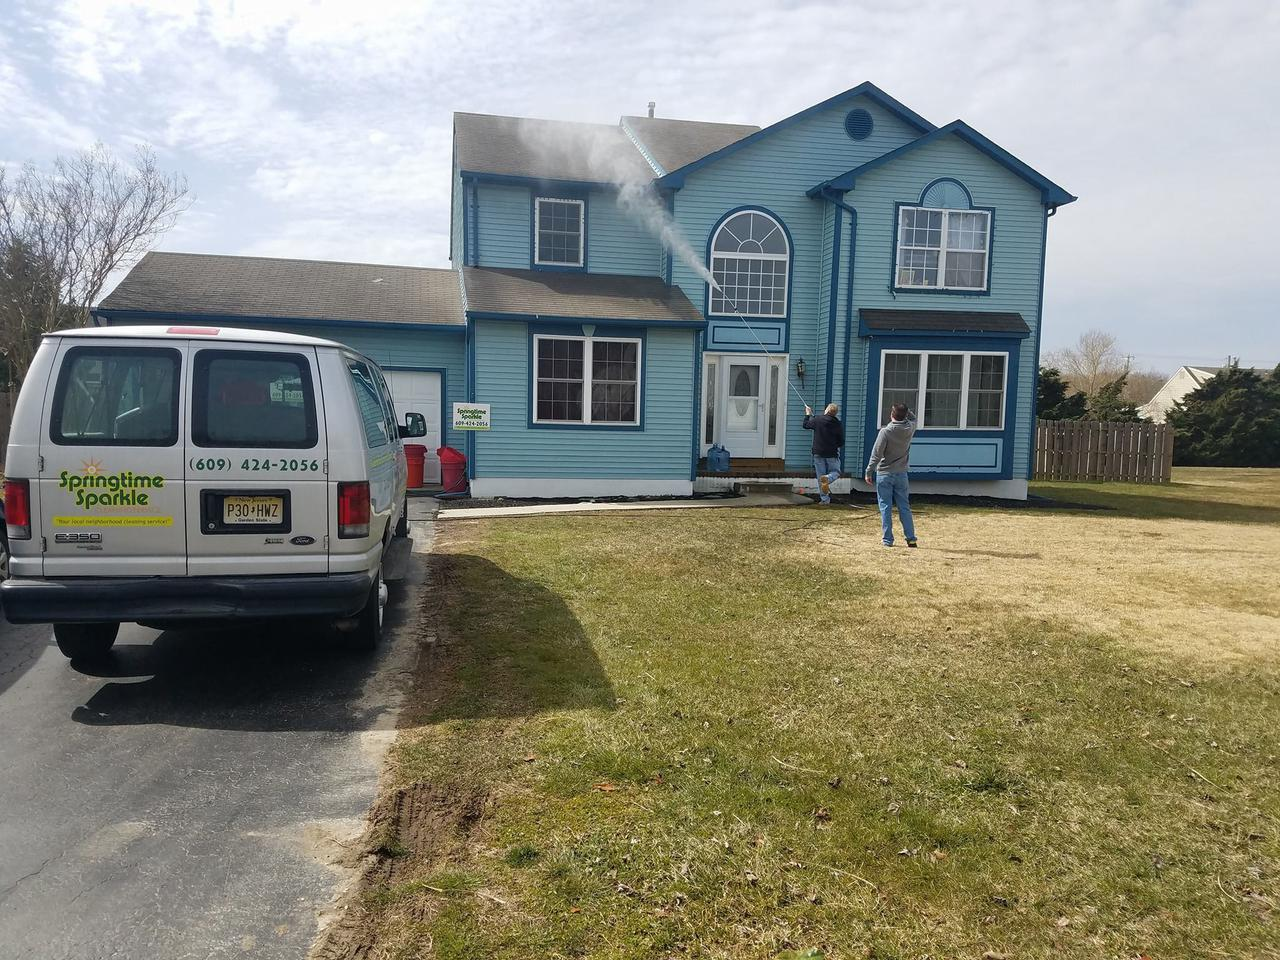 local pressure washing service by Springtime Sparkle Cleaning Service LLC